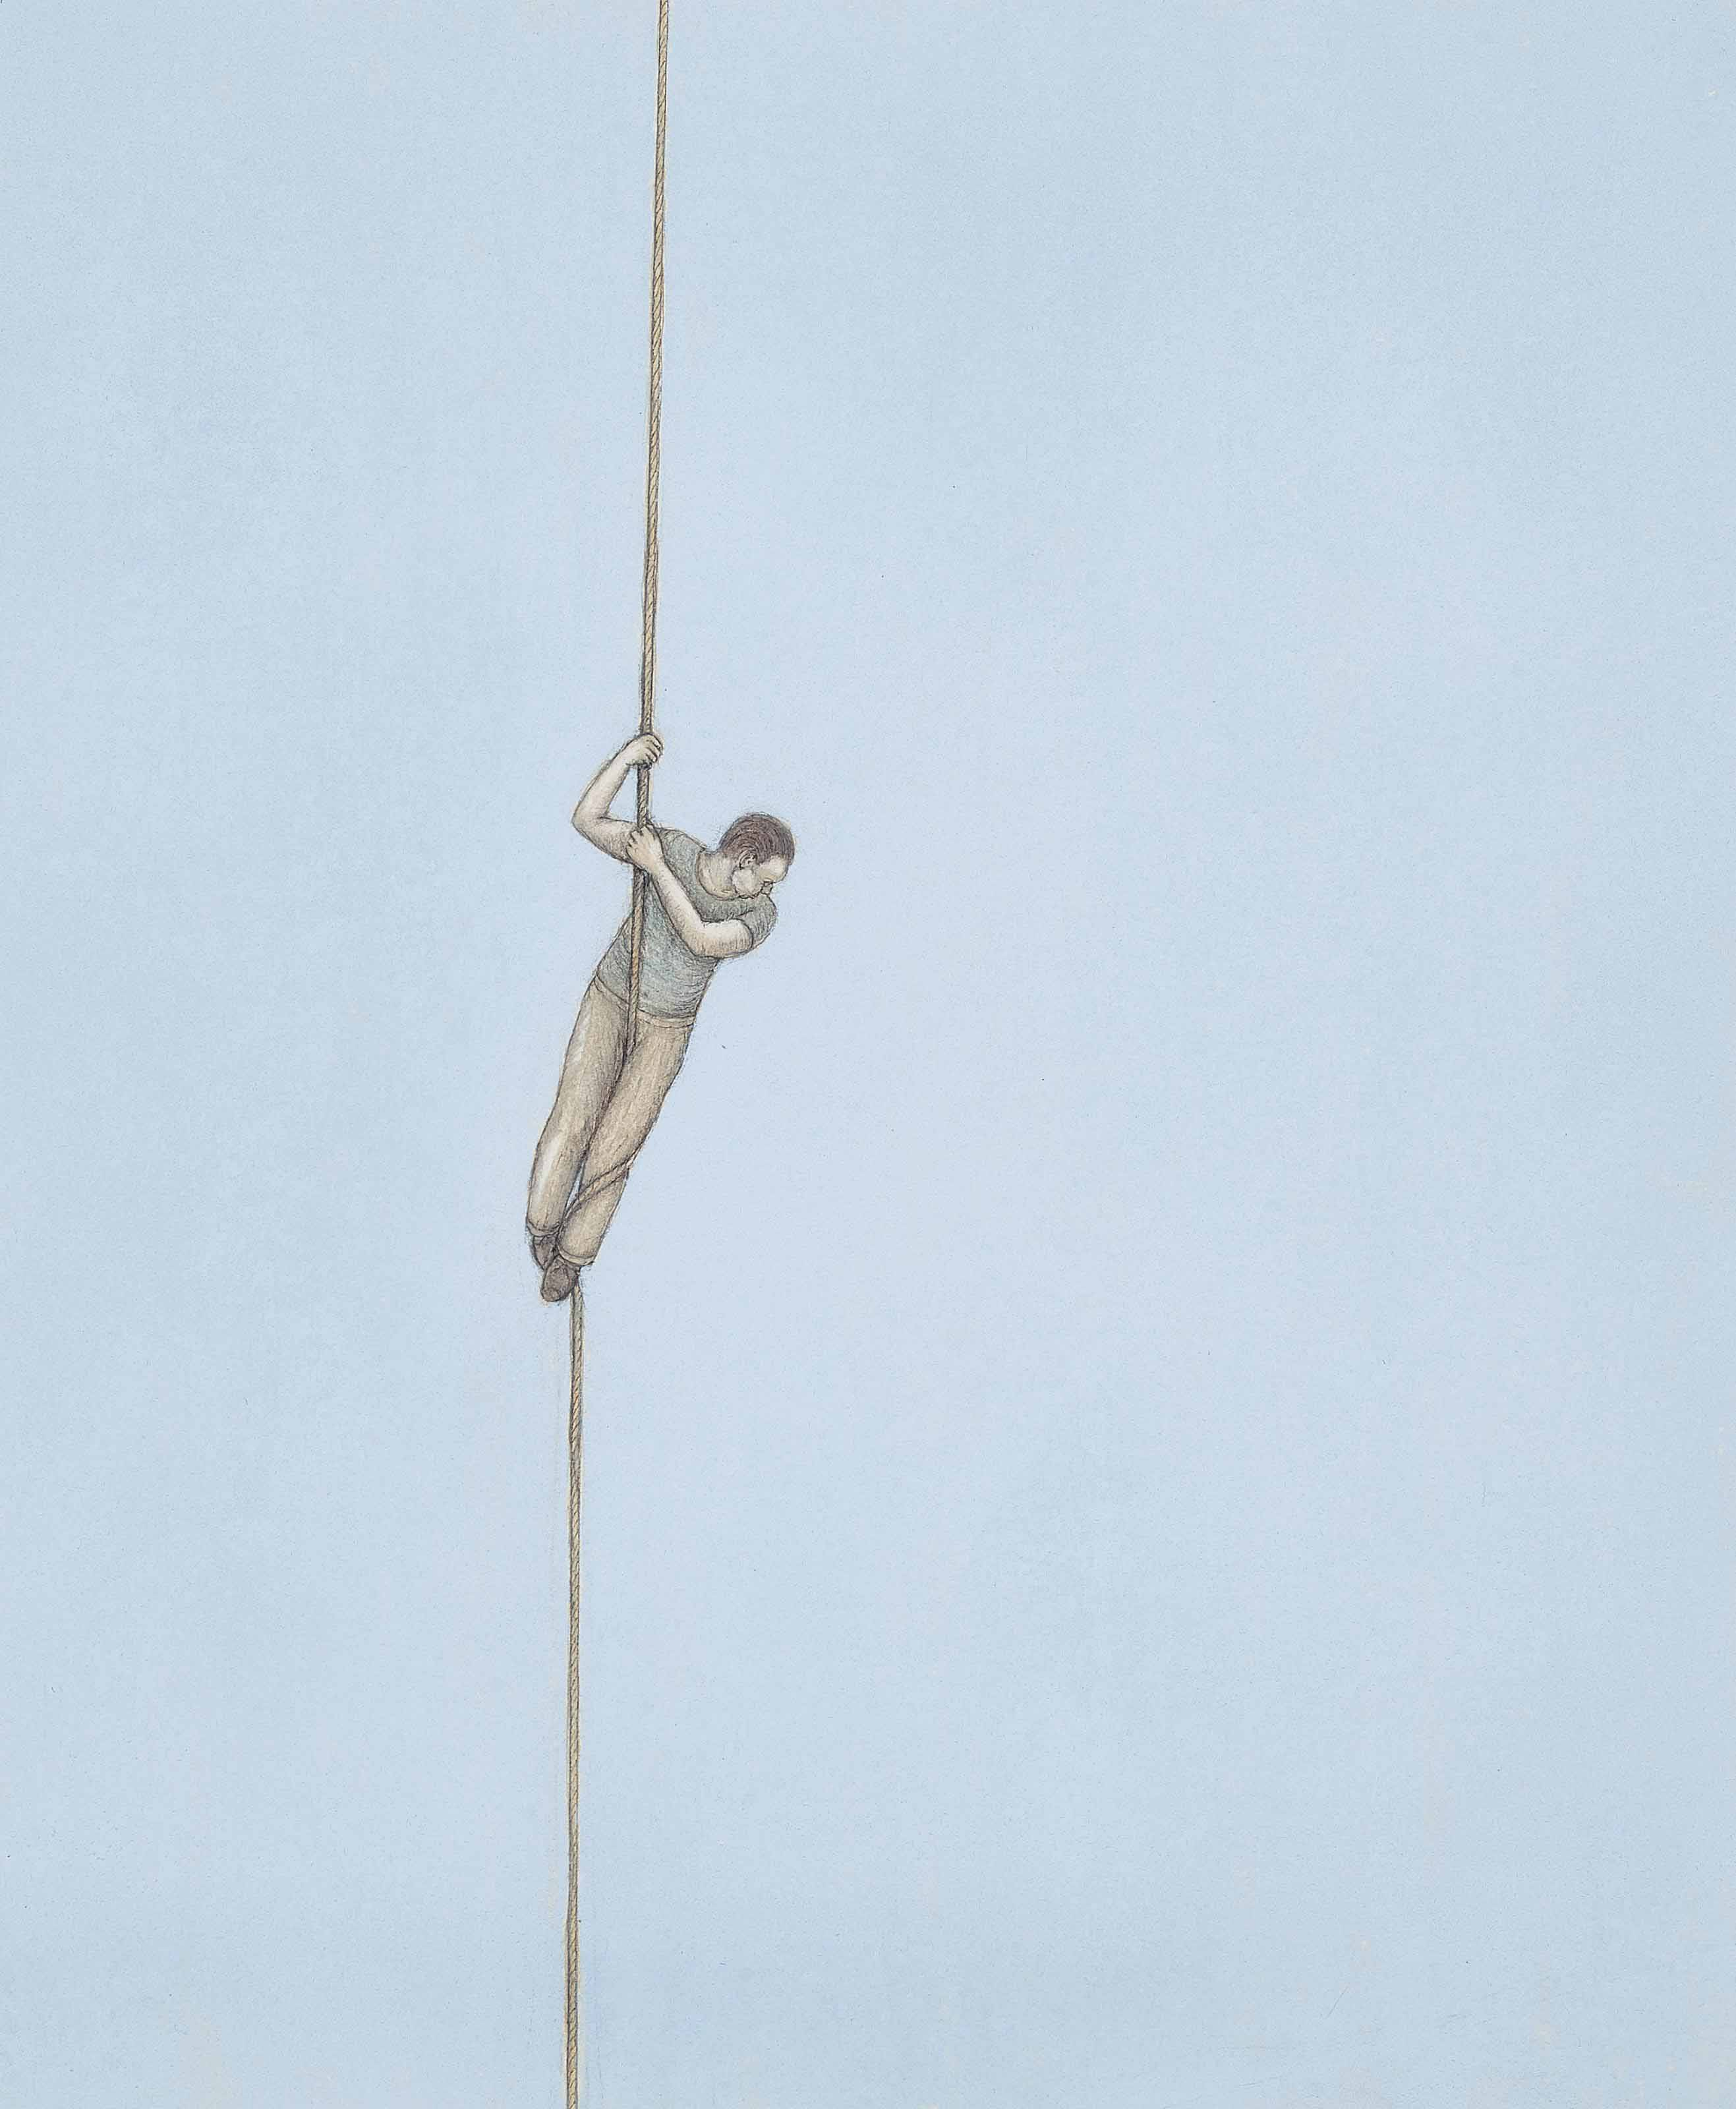 Man on a Rope